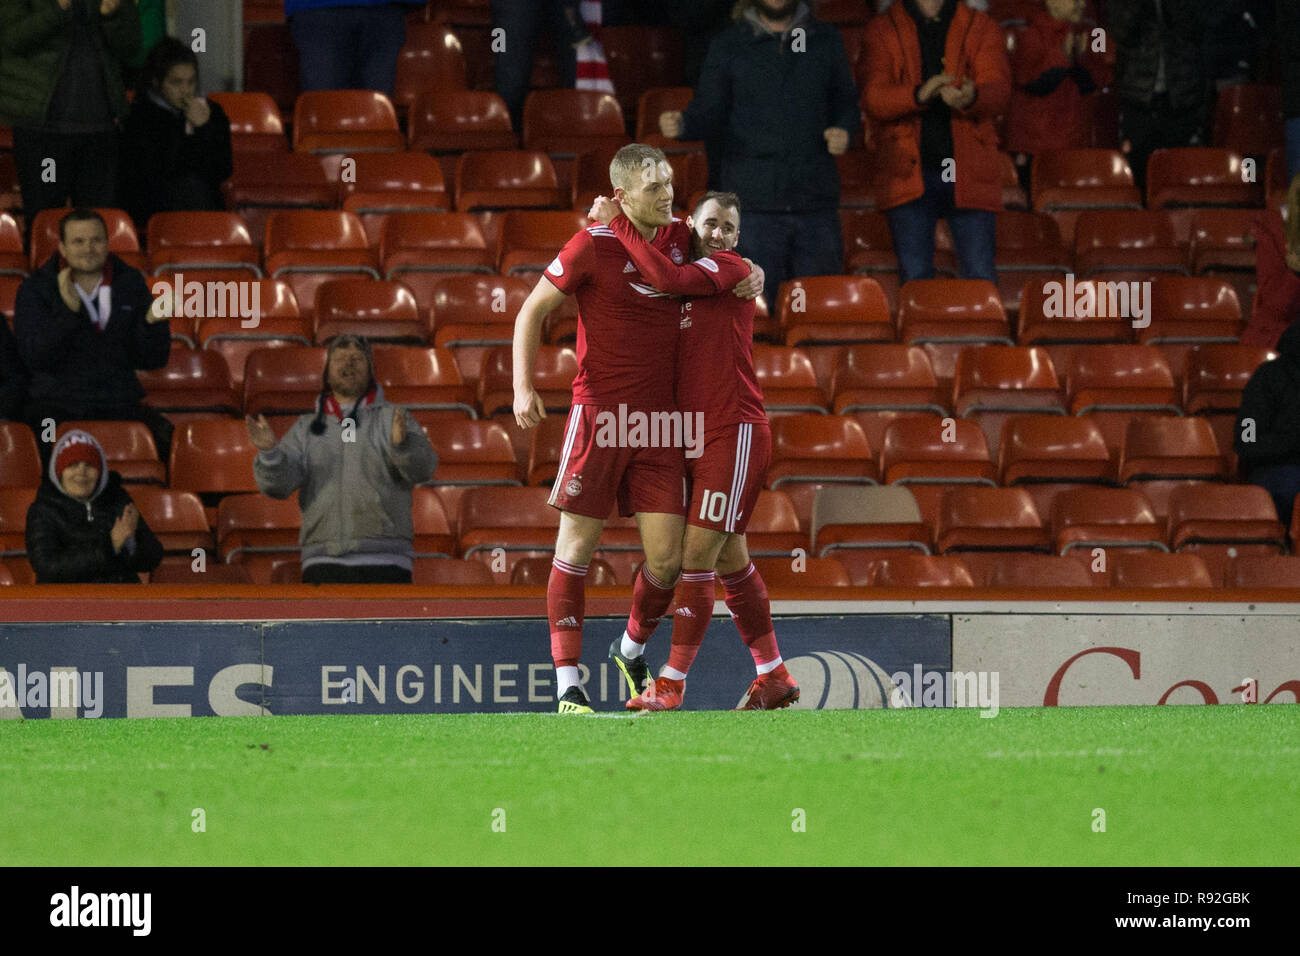 Pittodrie Stadium, Aberdeen, UK. 18th Dec, 2018. Ladbrokes Premiership football, Aberdeen versus Dundee; Sam Cosgrove of Aberdeen is congratulated after scoring for 2-0 by Niall McGinn Credit: Action Plus Sports/Alamy Live News - Stock Image